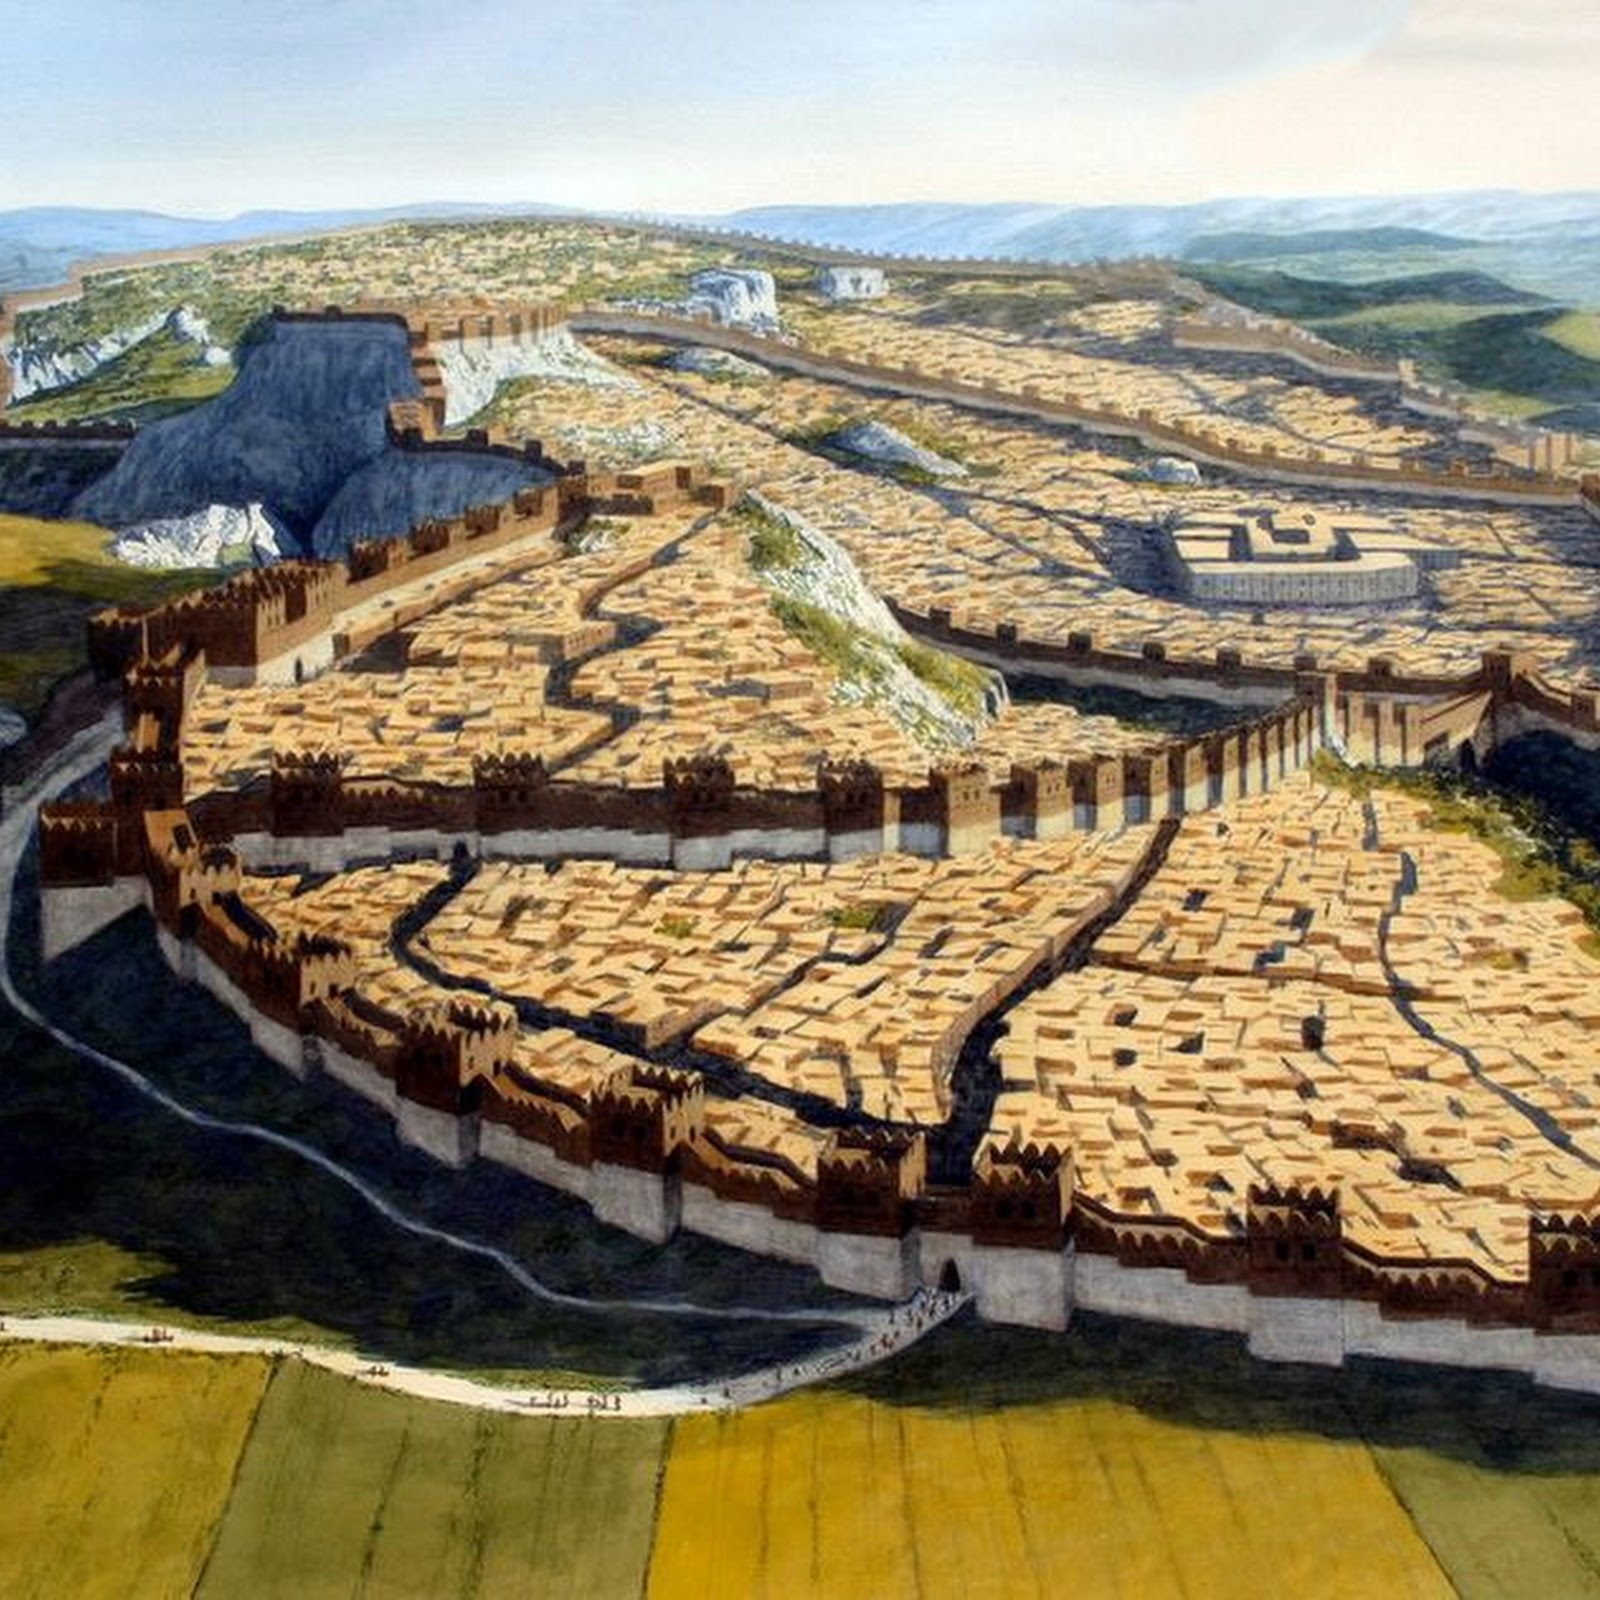 Hattusa: The Ancient Capital of The Hittites